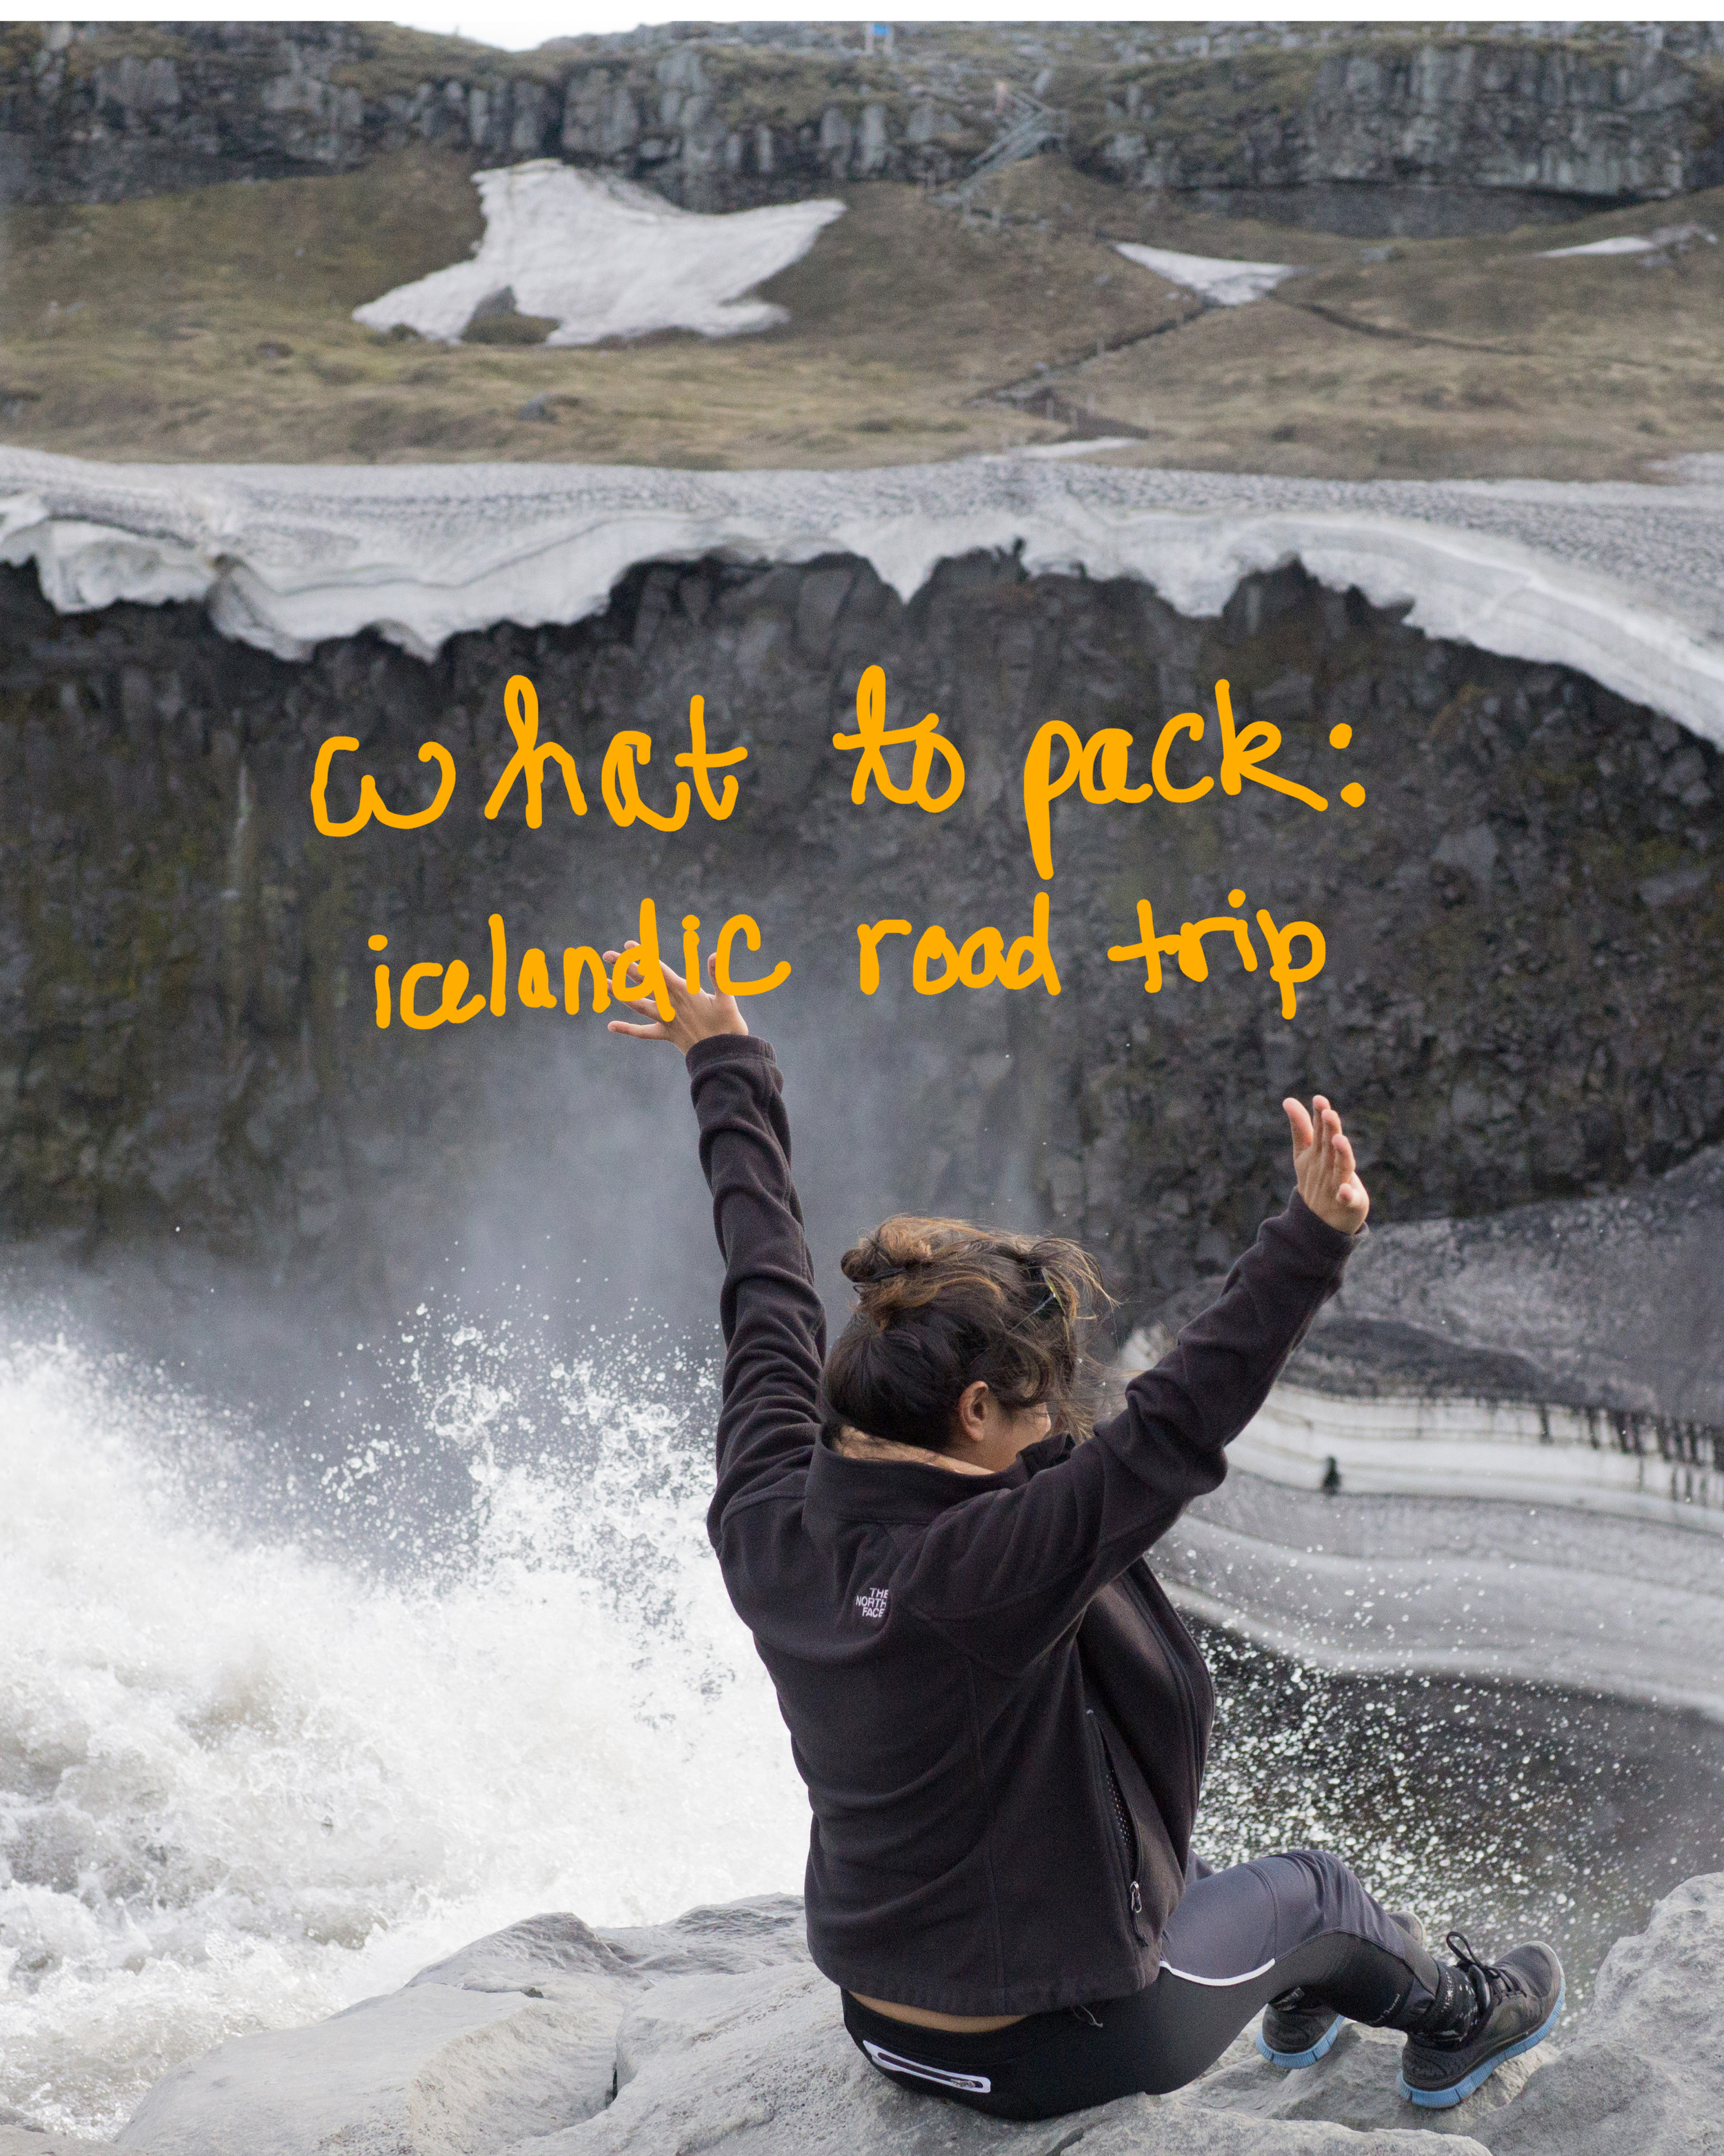 iceland-pack